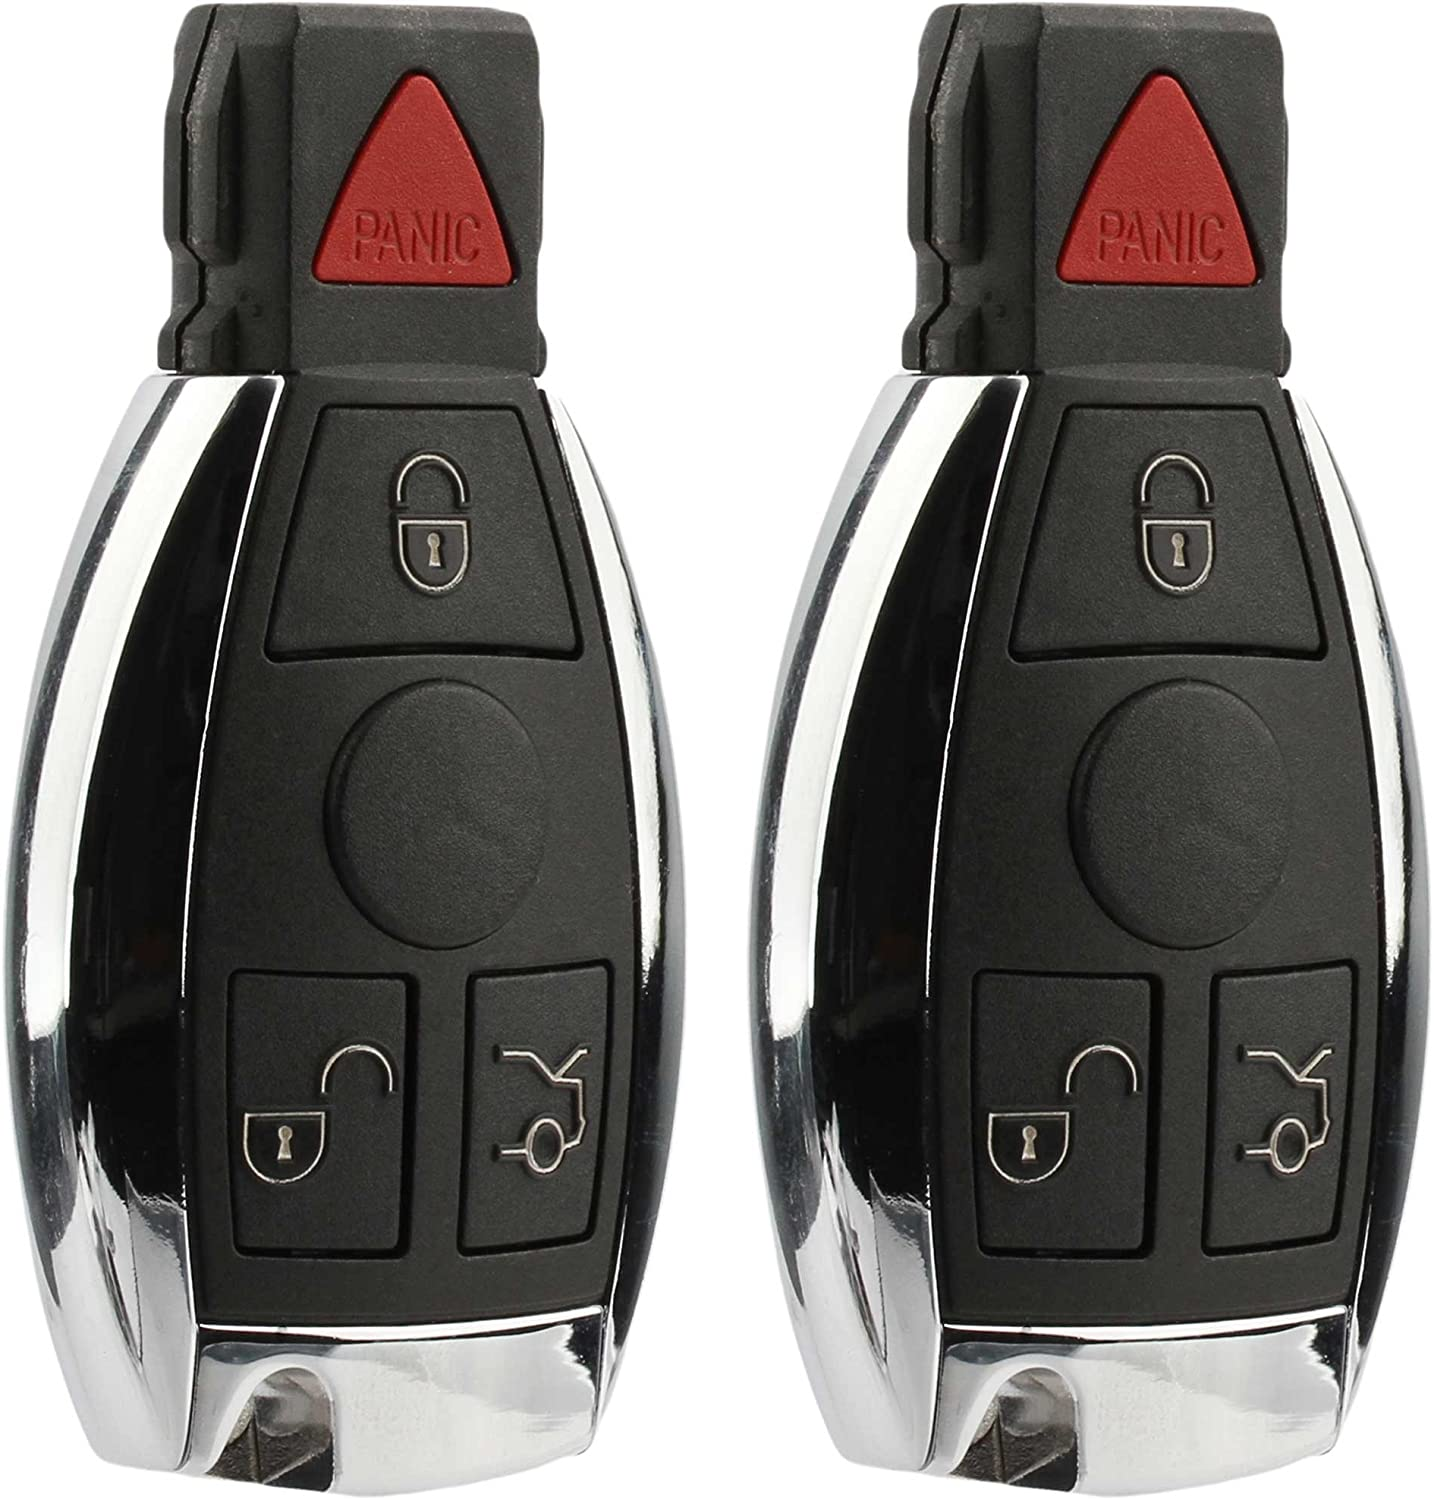 KeylessOption Keyless entry Car Remote Key Fob Shell Button Pad Battery Clip for IYZ3312 Pack of 2